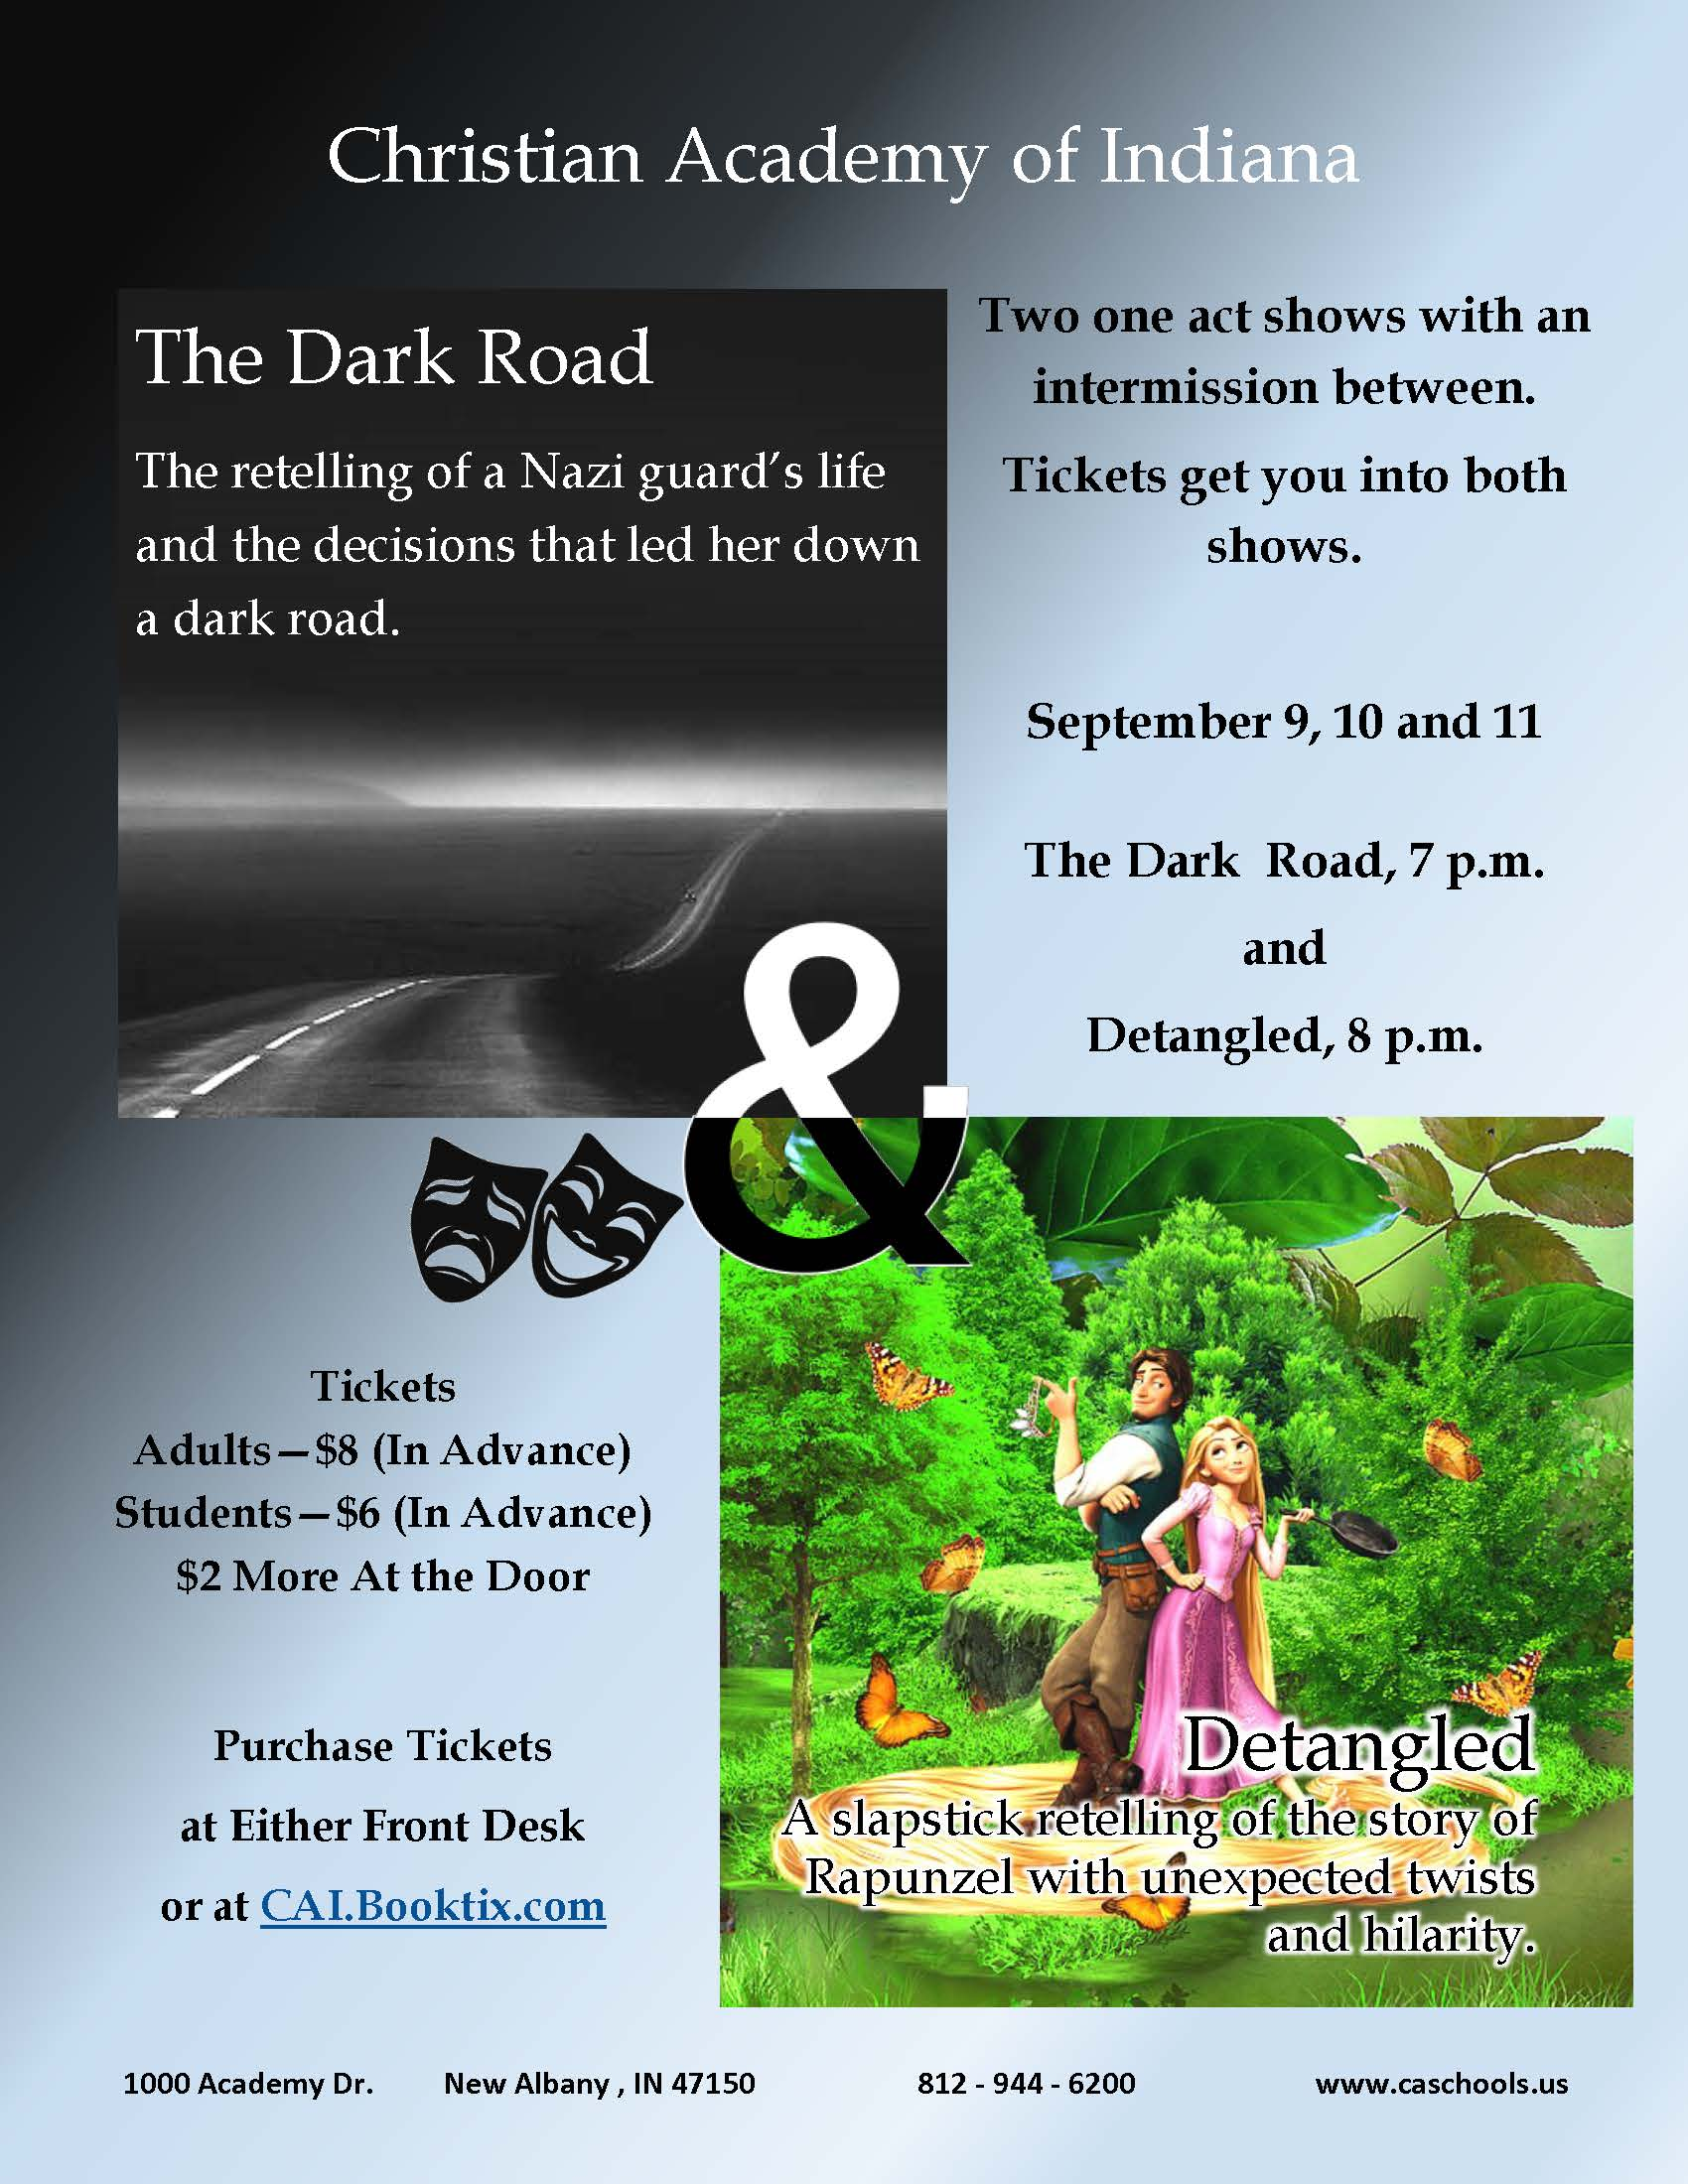 Christian Academy School System   Christian Academy of Indiana   Drama   High School Production   The Dark Road and Detangled   September 9-11